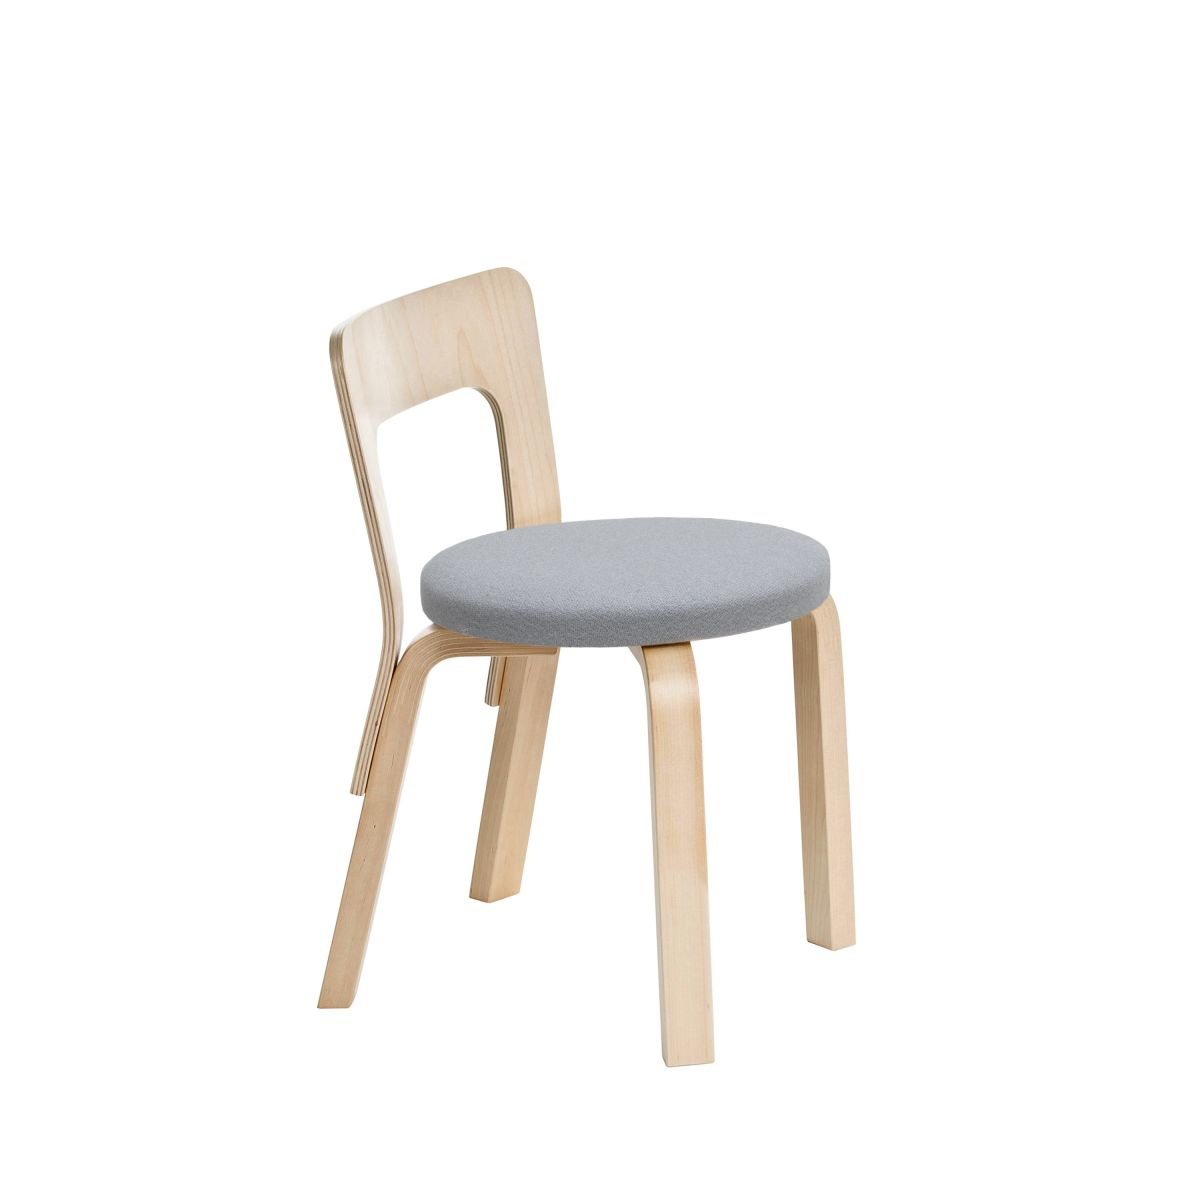 Childrens-Chair-N65-legs-birch_seat-fabric-upholstery_F-2912712